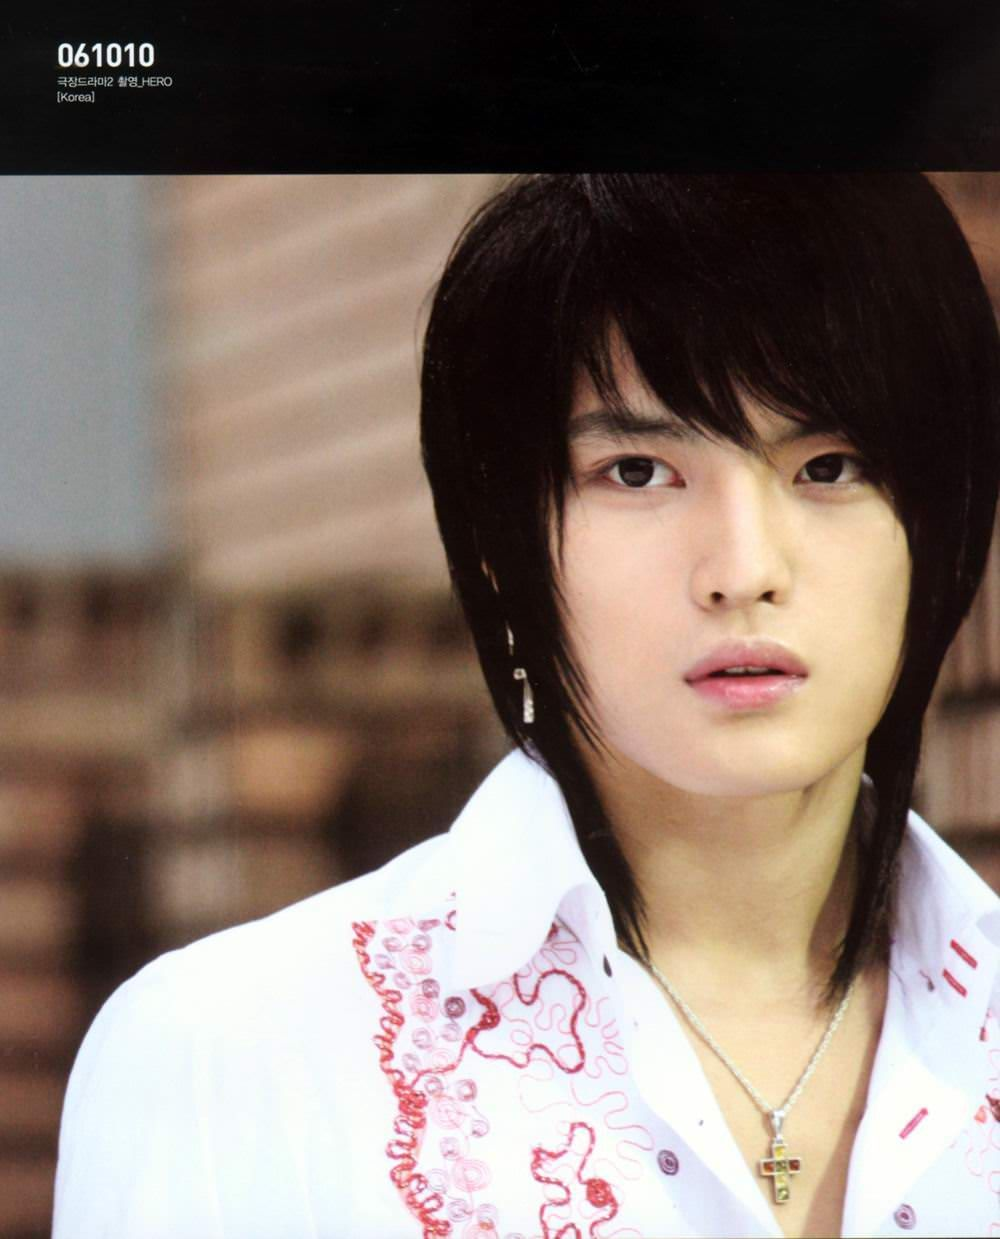 2006 Dating On Earth Jaejoong Ver Jaejoong Kim Jae Joong Tvxq